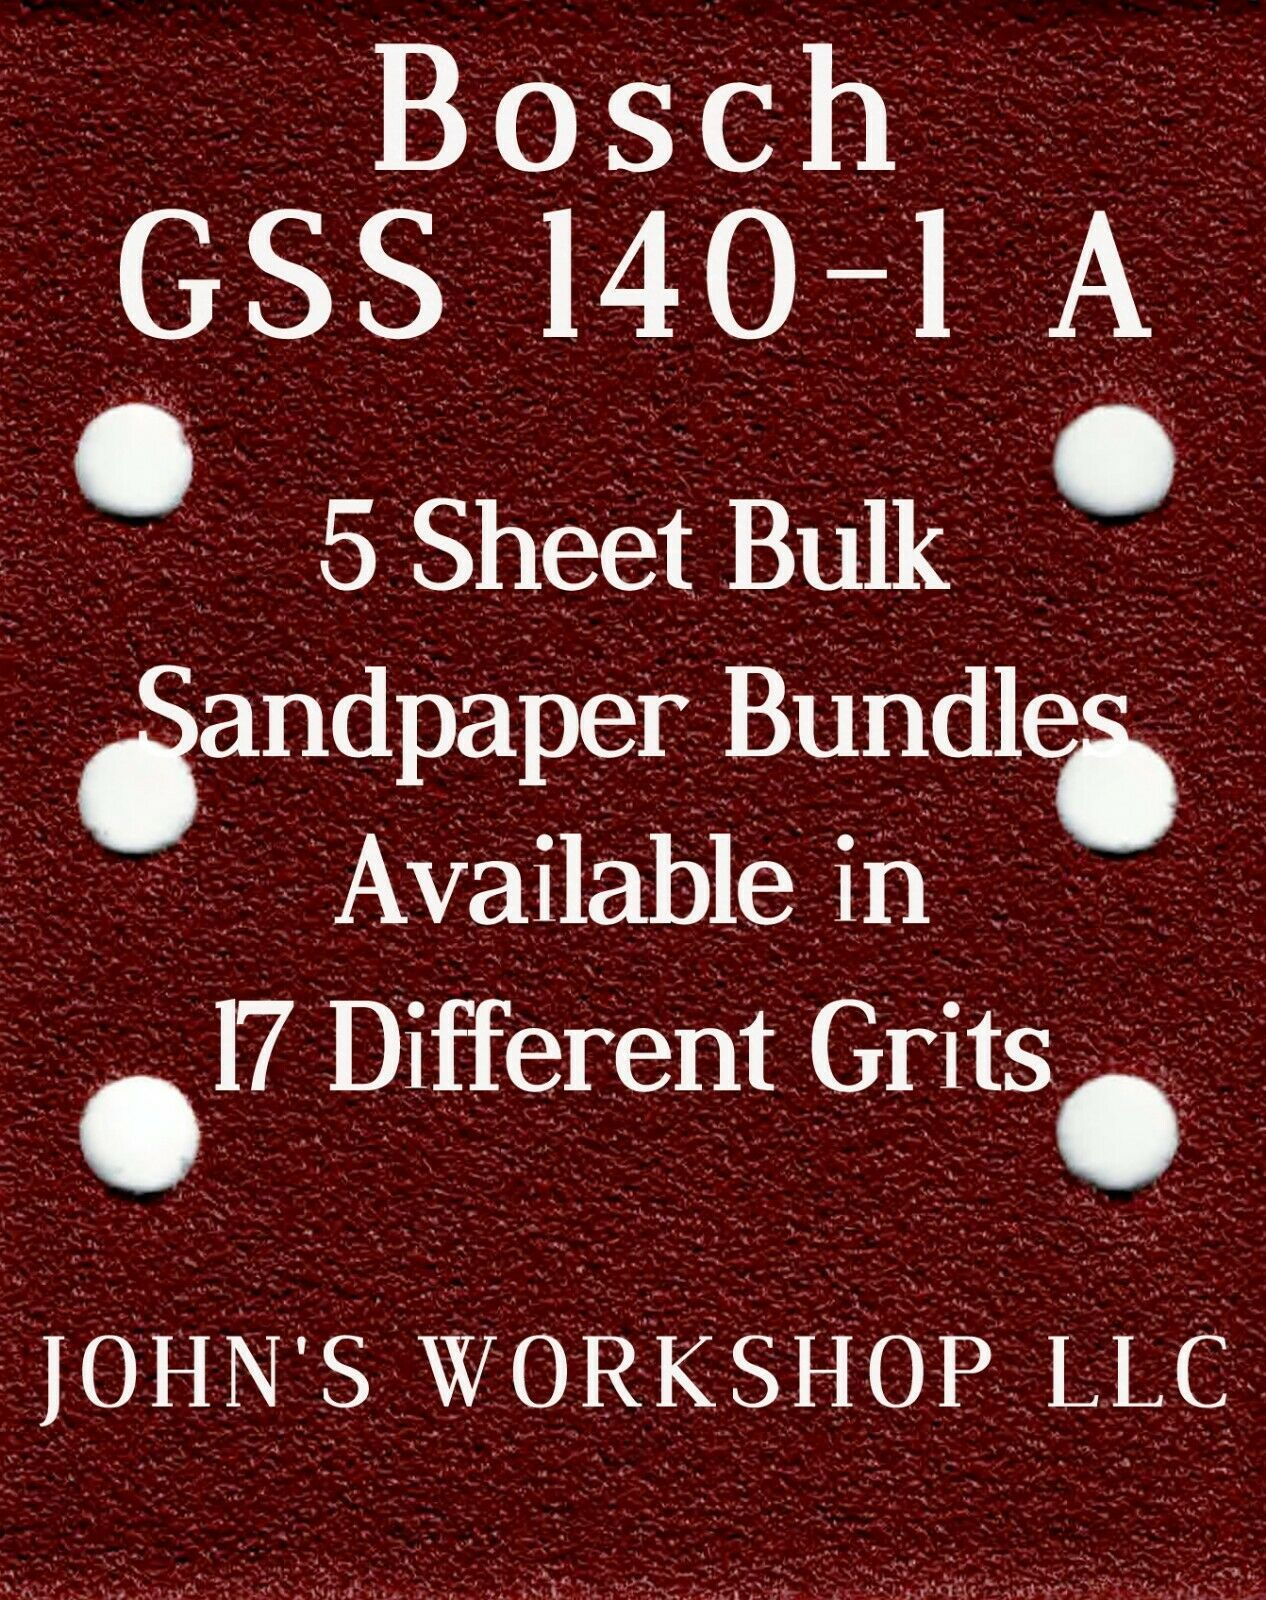 Primary image for Bosch GSS 140-1 A - 1/4 Sheet - 17 Grits - No-Slip - 5 Sandpaper Bulk Bundles